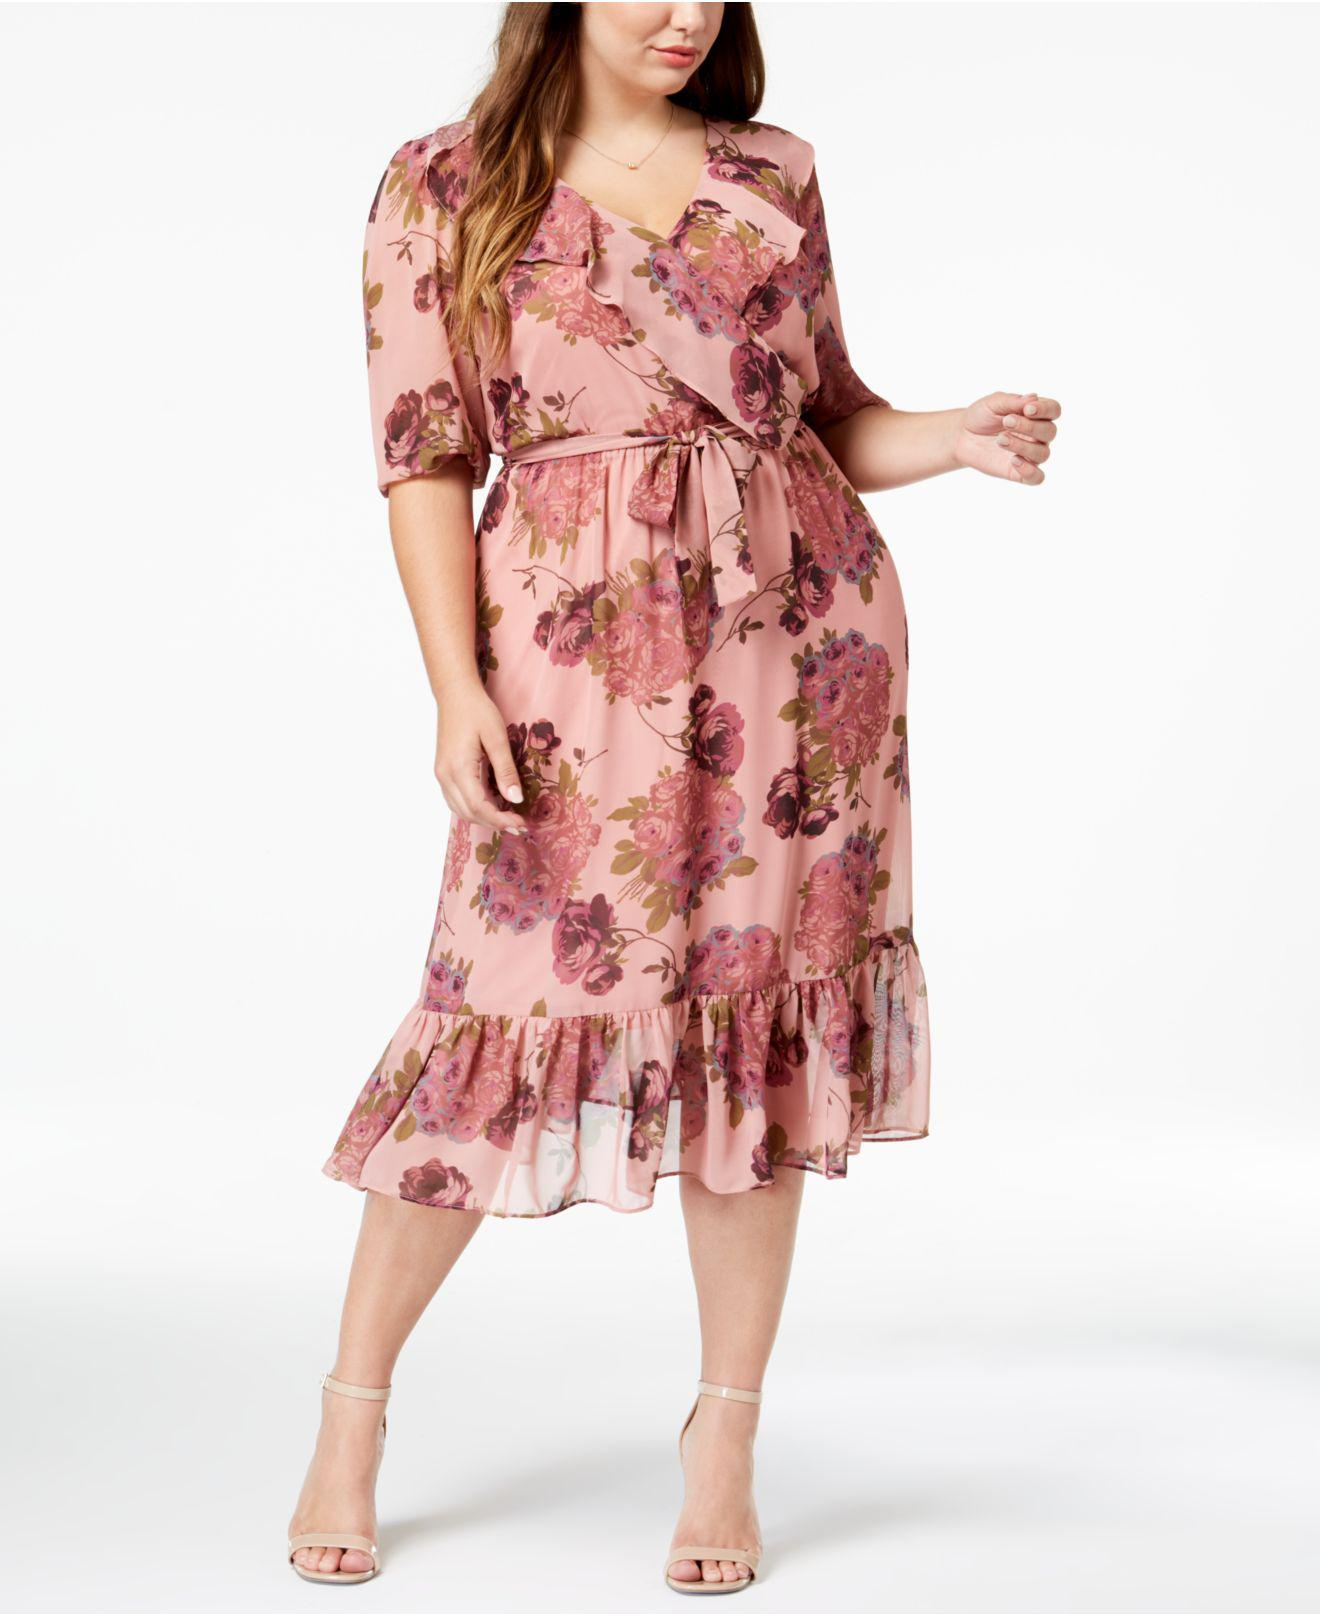 5c0b3d907fad Betsey Johnson Trendy Plus Size Floral Chiffon Wrap Dress in Pink - Lyst